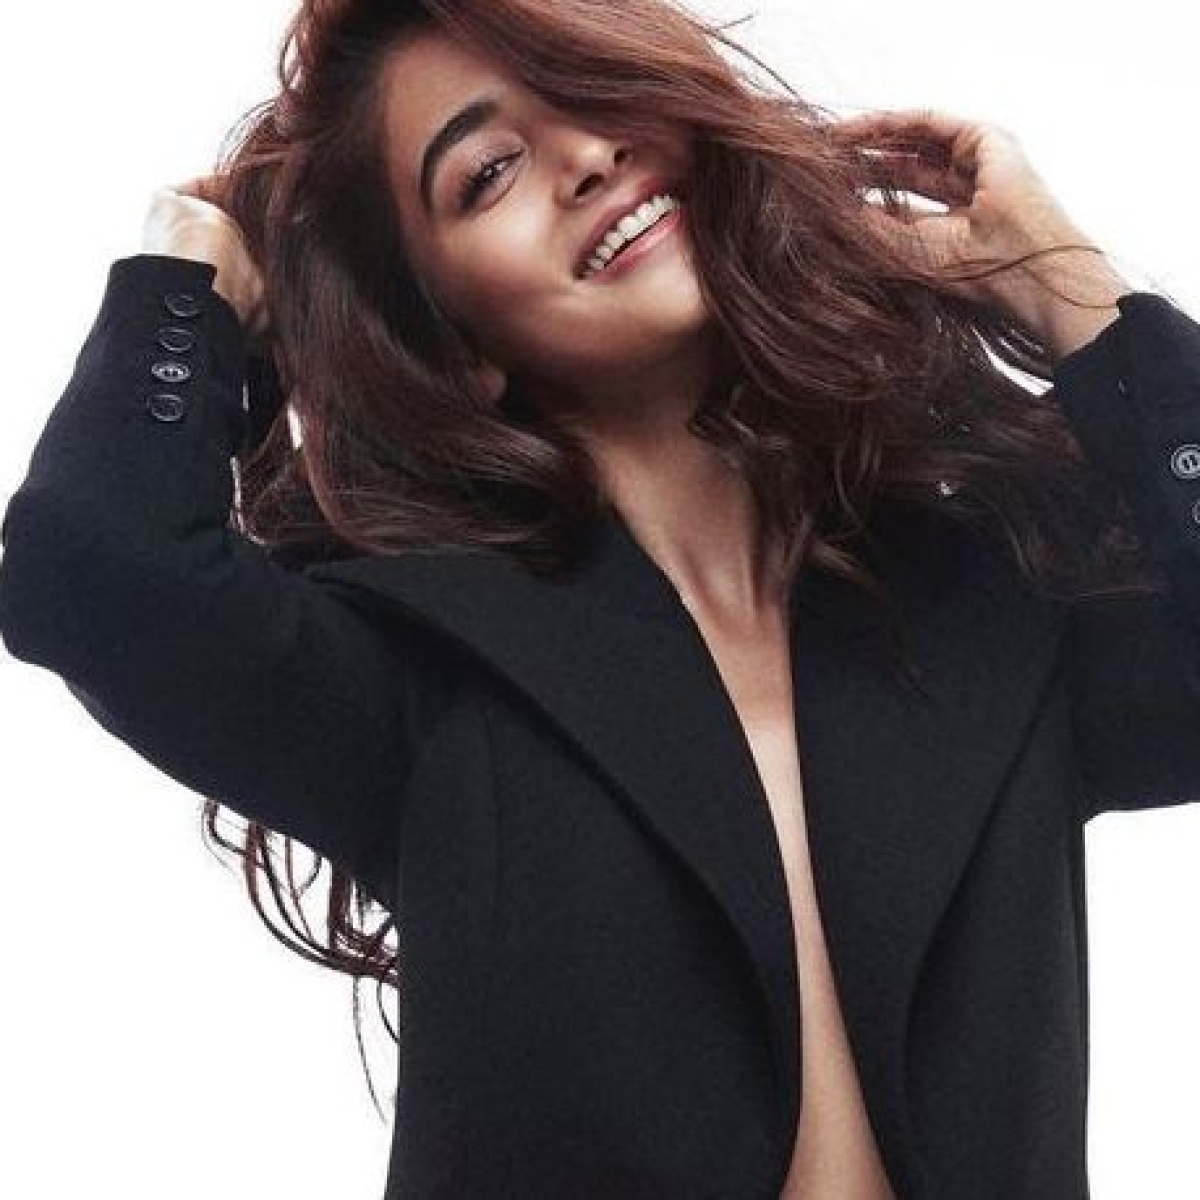 Sexy Pooja Hegde treats fans with a 'no bra' picture amid COVID-19 recovery